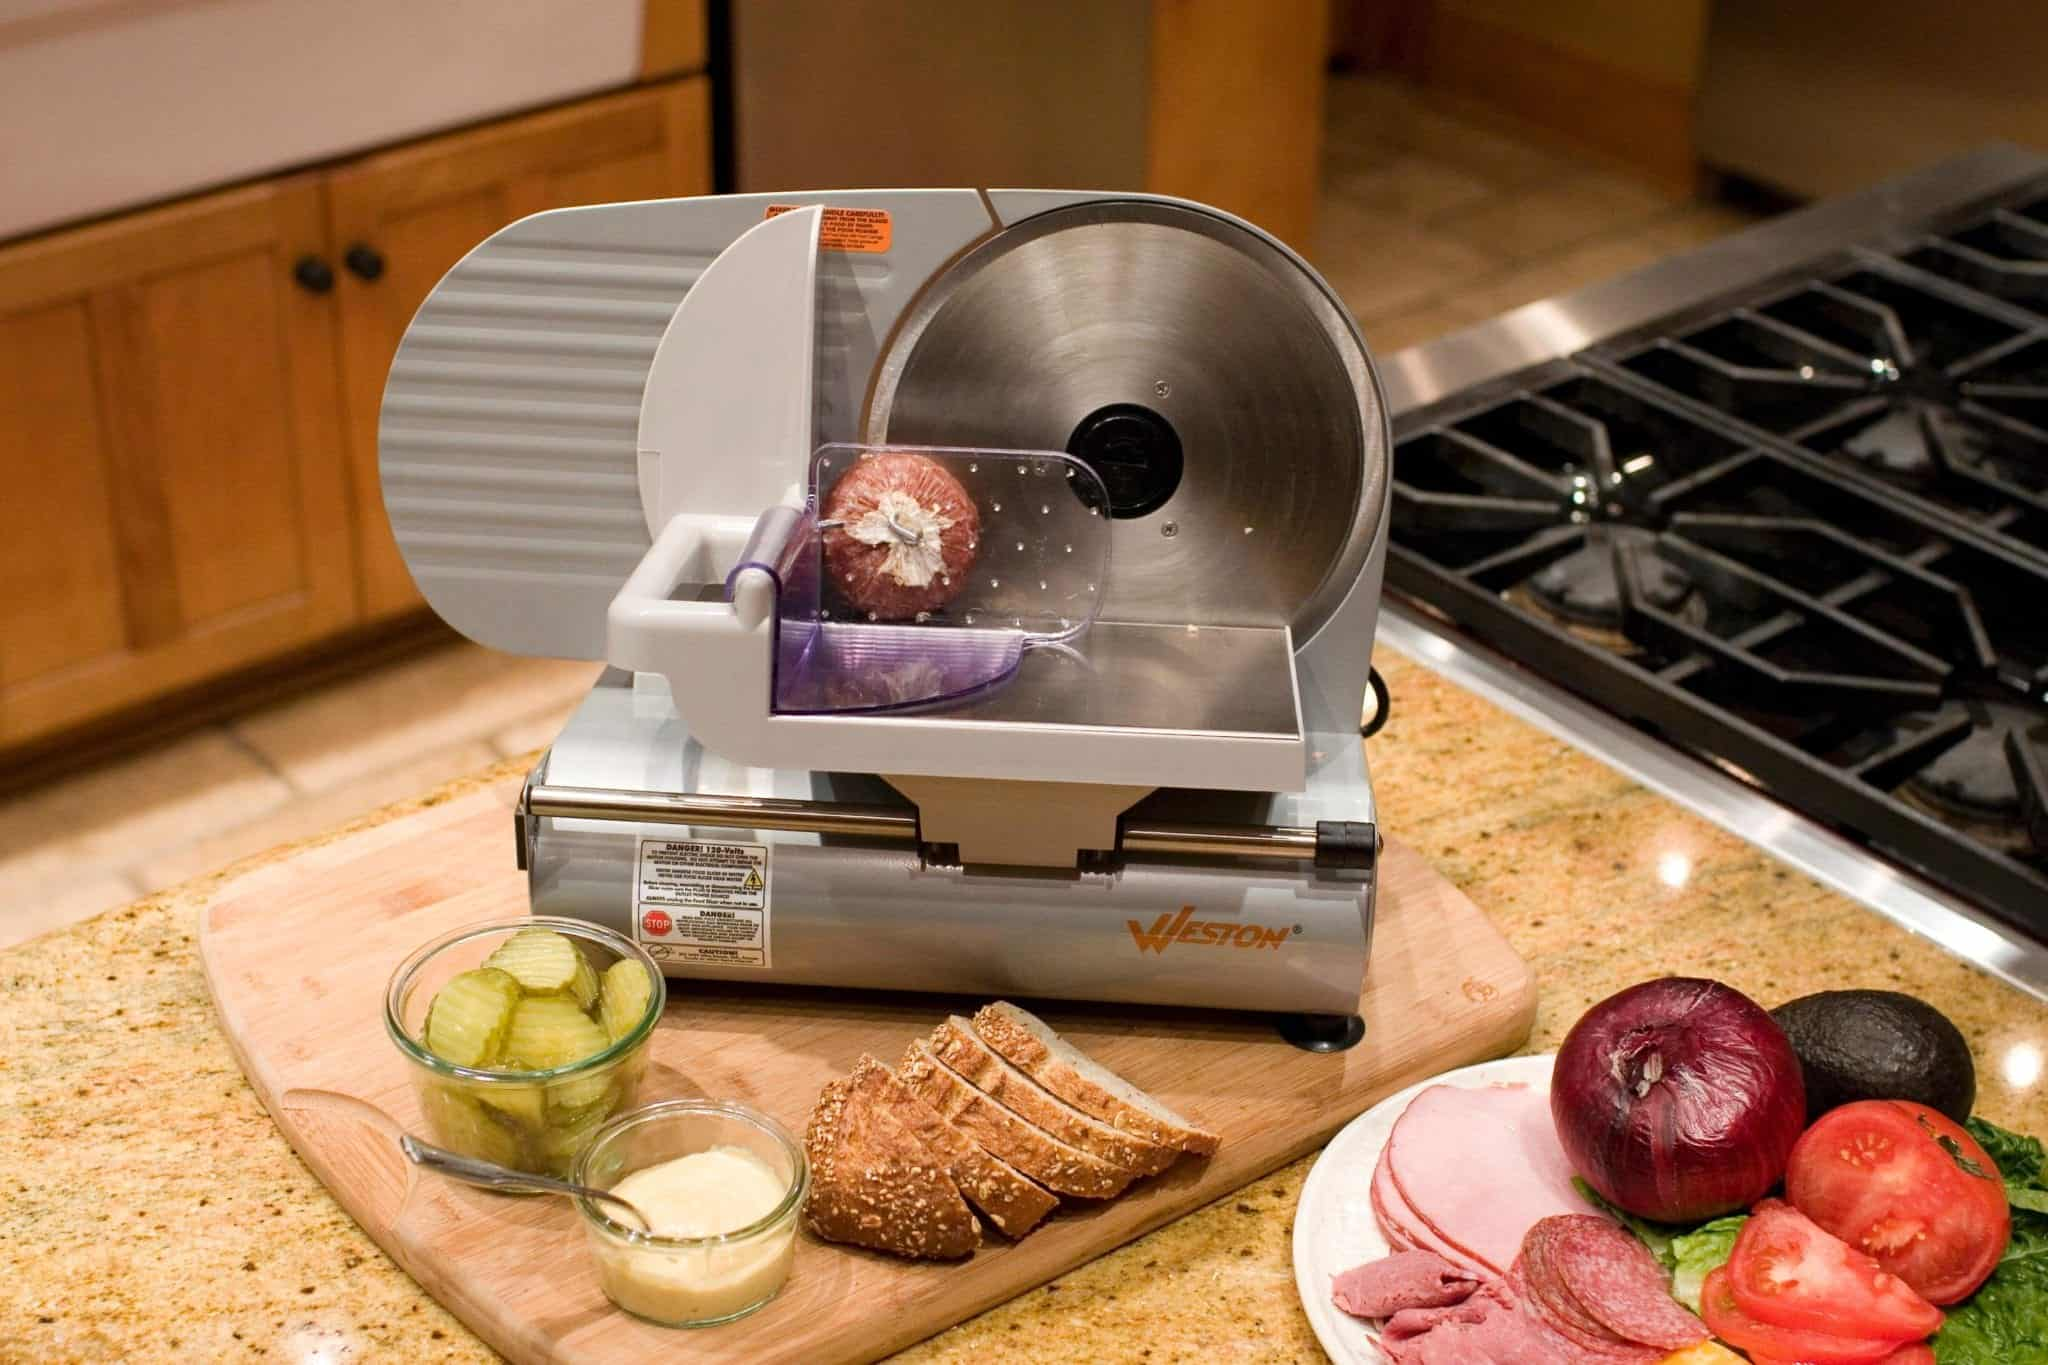 How often should a meat slicer be cleaned